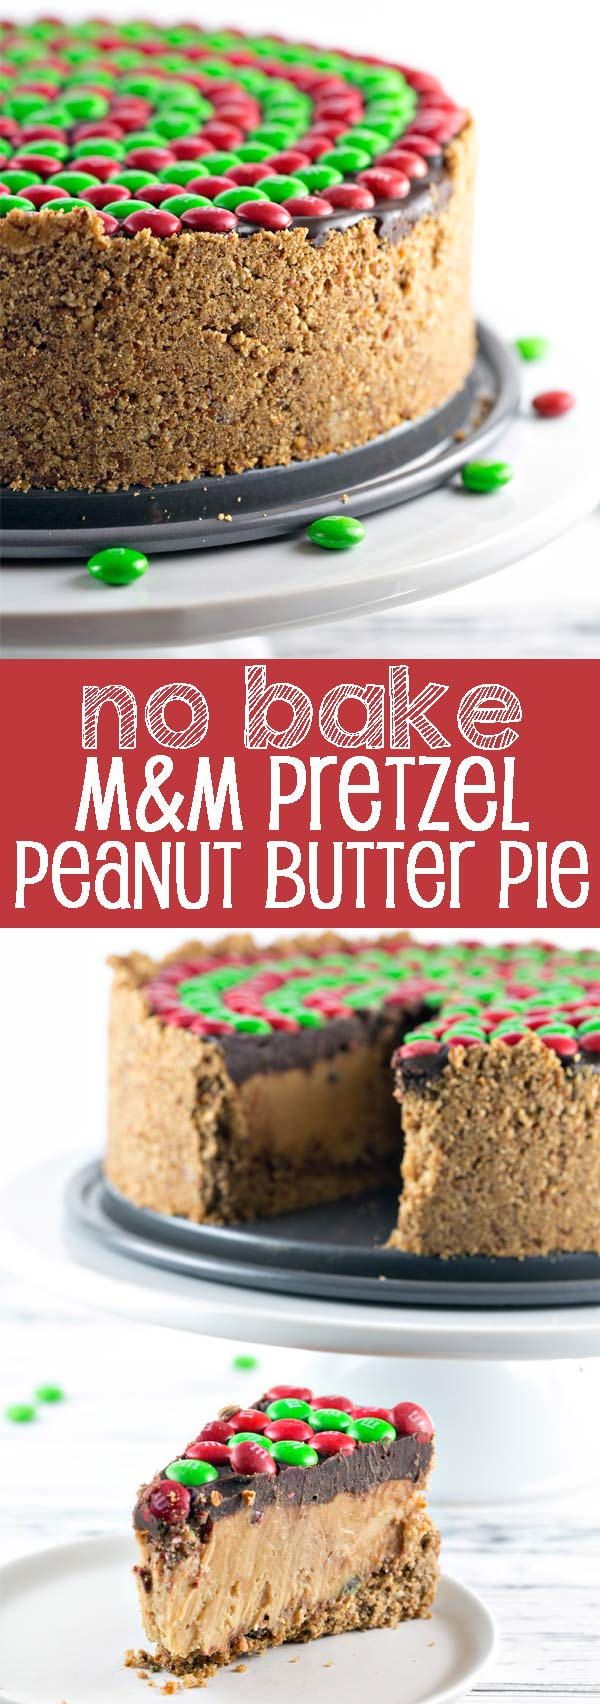 No Bake M&M'S® Pretzel Peanut Butter Pie: salty, crispy pretzel crust, smooth whipped peanut butter filling, rich chocolate ganache, and crunchy M&Ms combine into the perfect easy pie. Perfect for holiday entertaining! {Bunsen Burner Bakery}